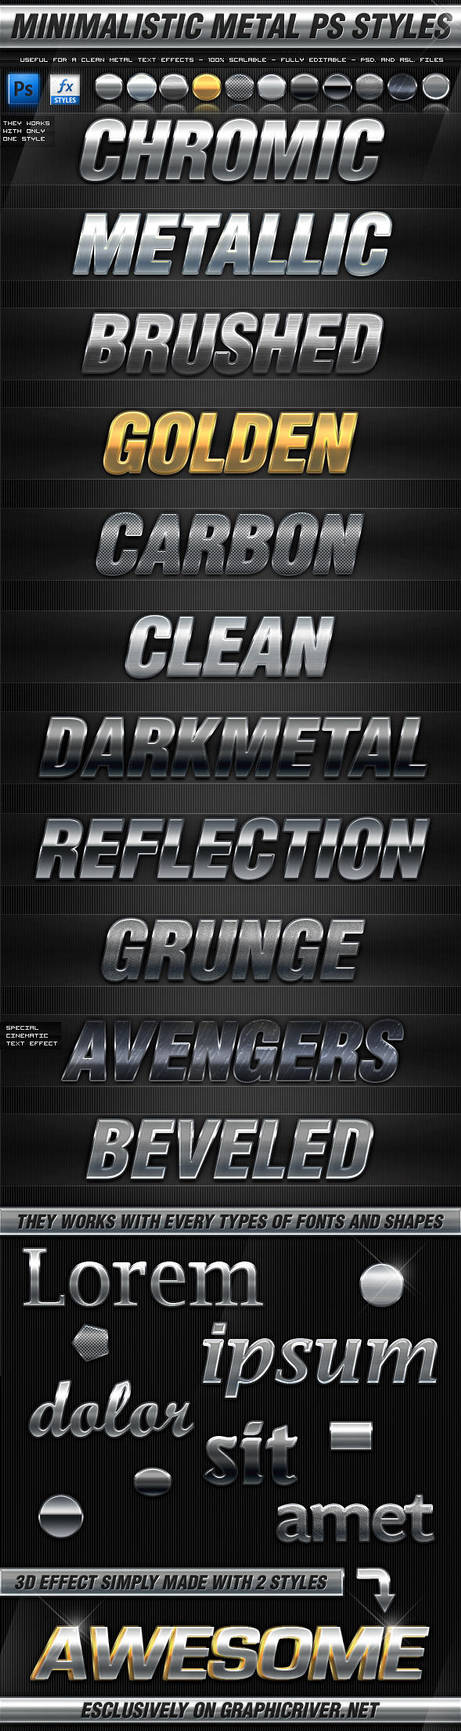 Minimalistic Metal Photoshop Layer Styles by KoolGfx